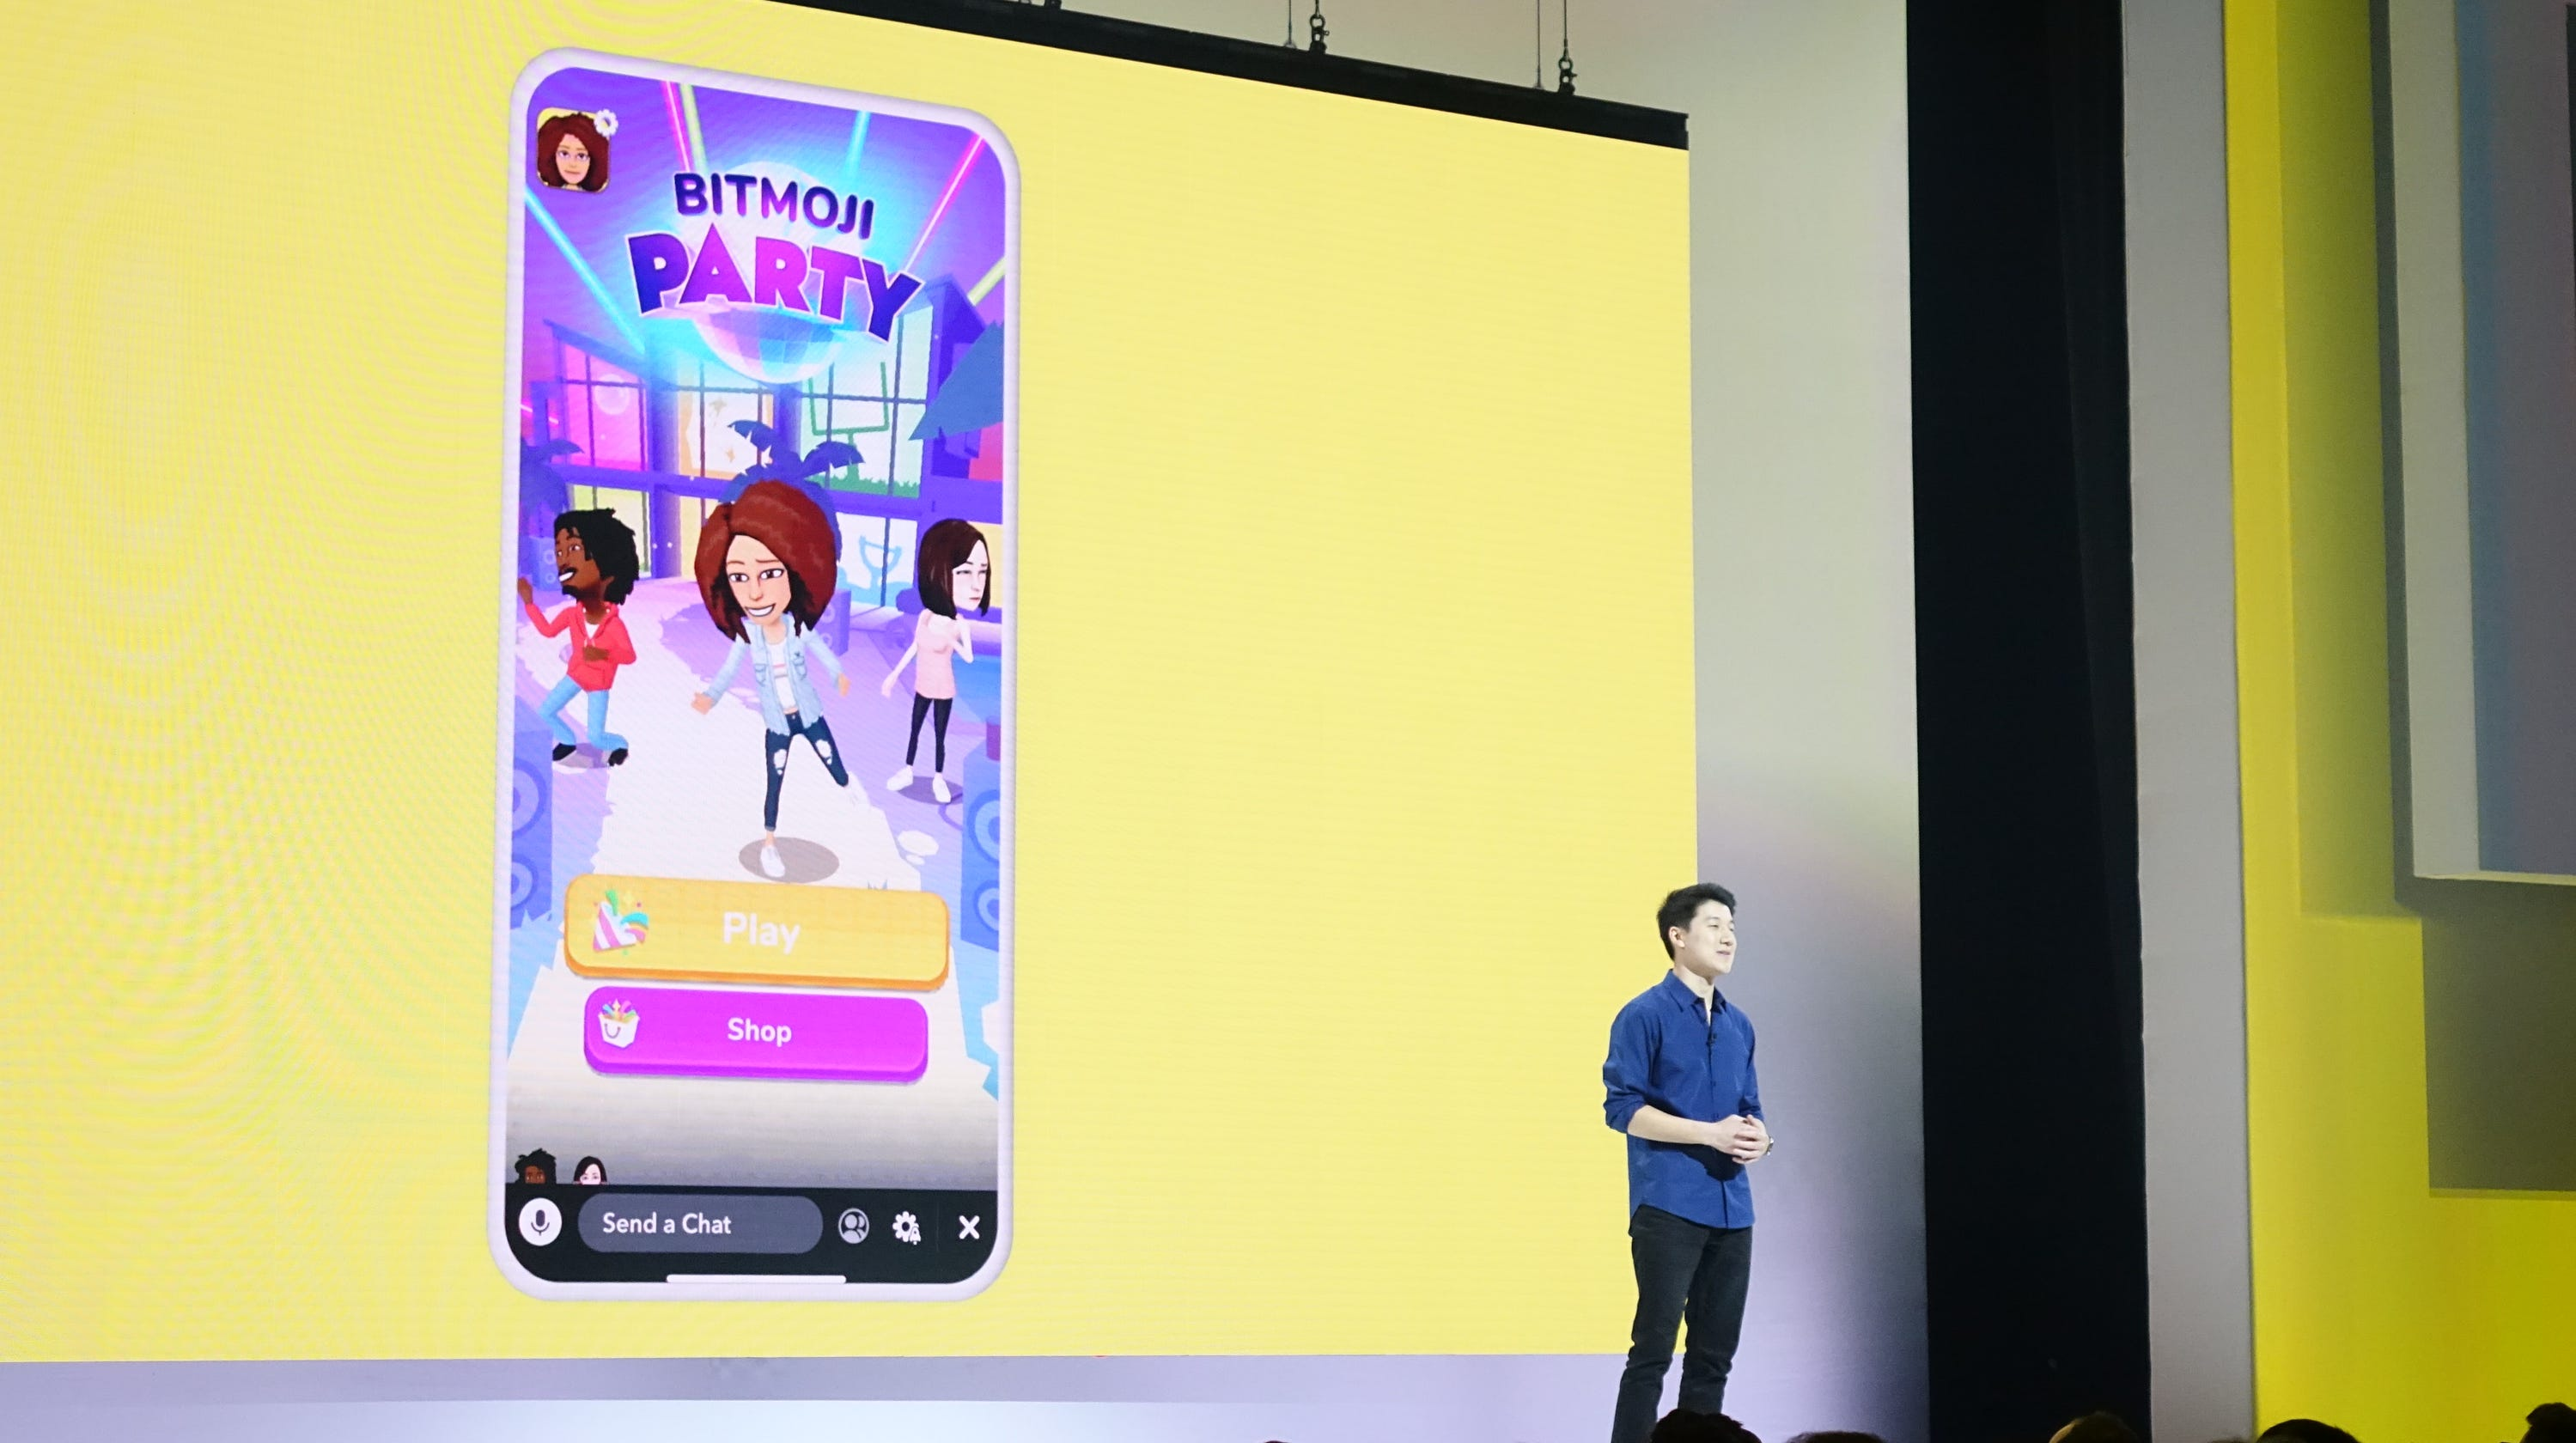 Snapchat: With Bitmoji Party game, Snap hopes young viewers stick around